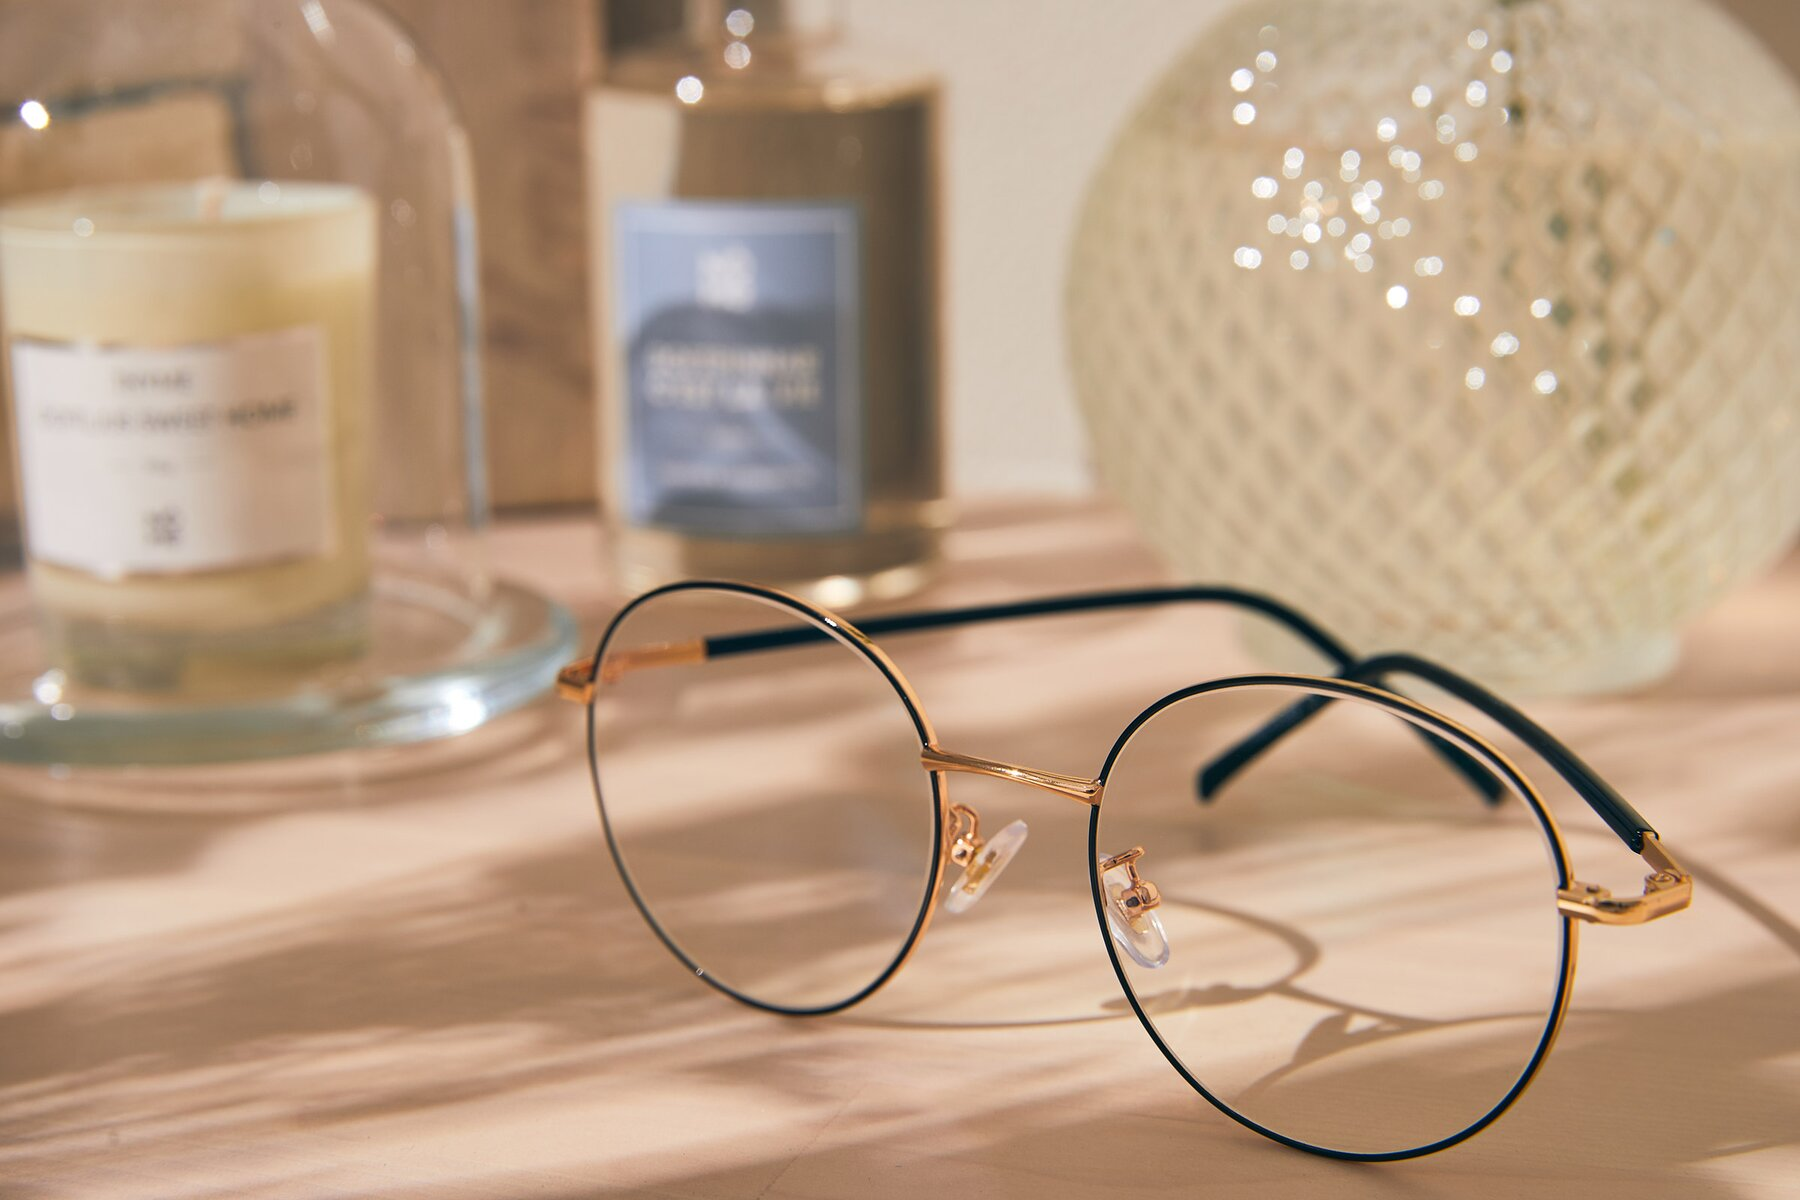 Lifestyle photography #2 of Cosmos in Black-Gold with Clear Eyeglass Lenses